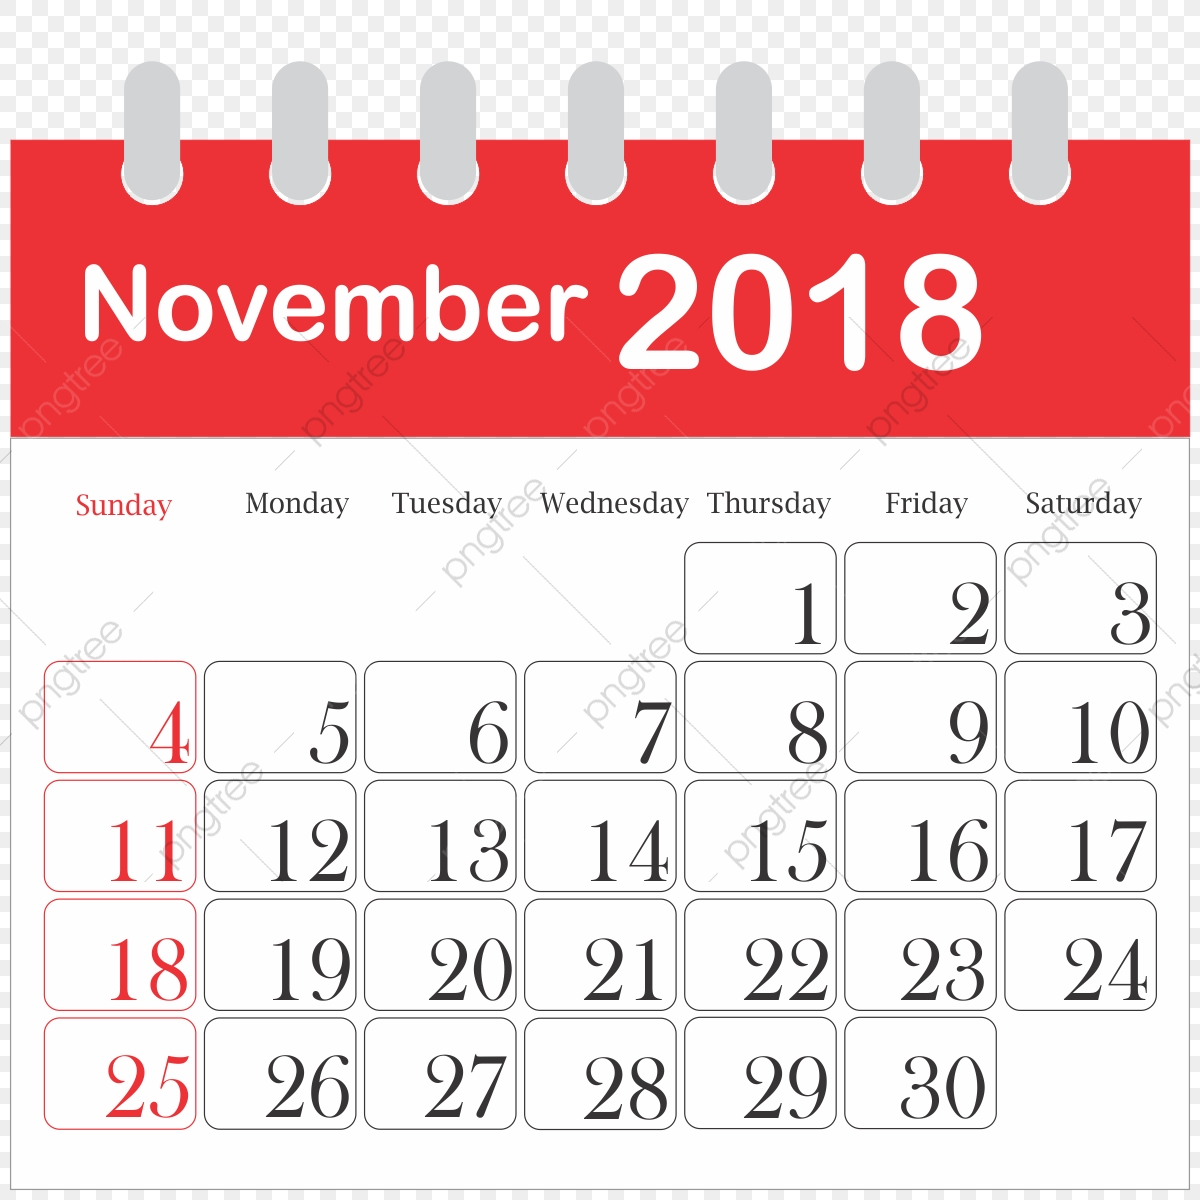 Month Calendar 2018 November, 2018, Icon, Daily PNG